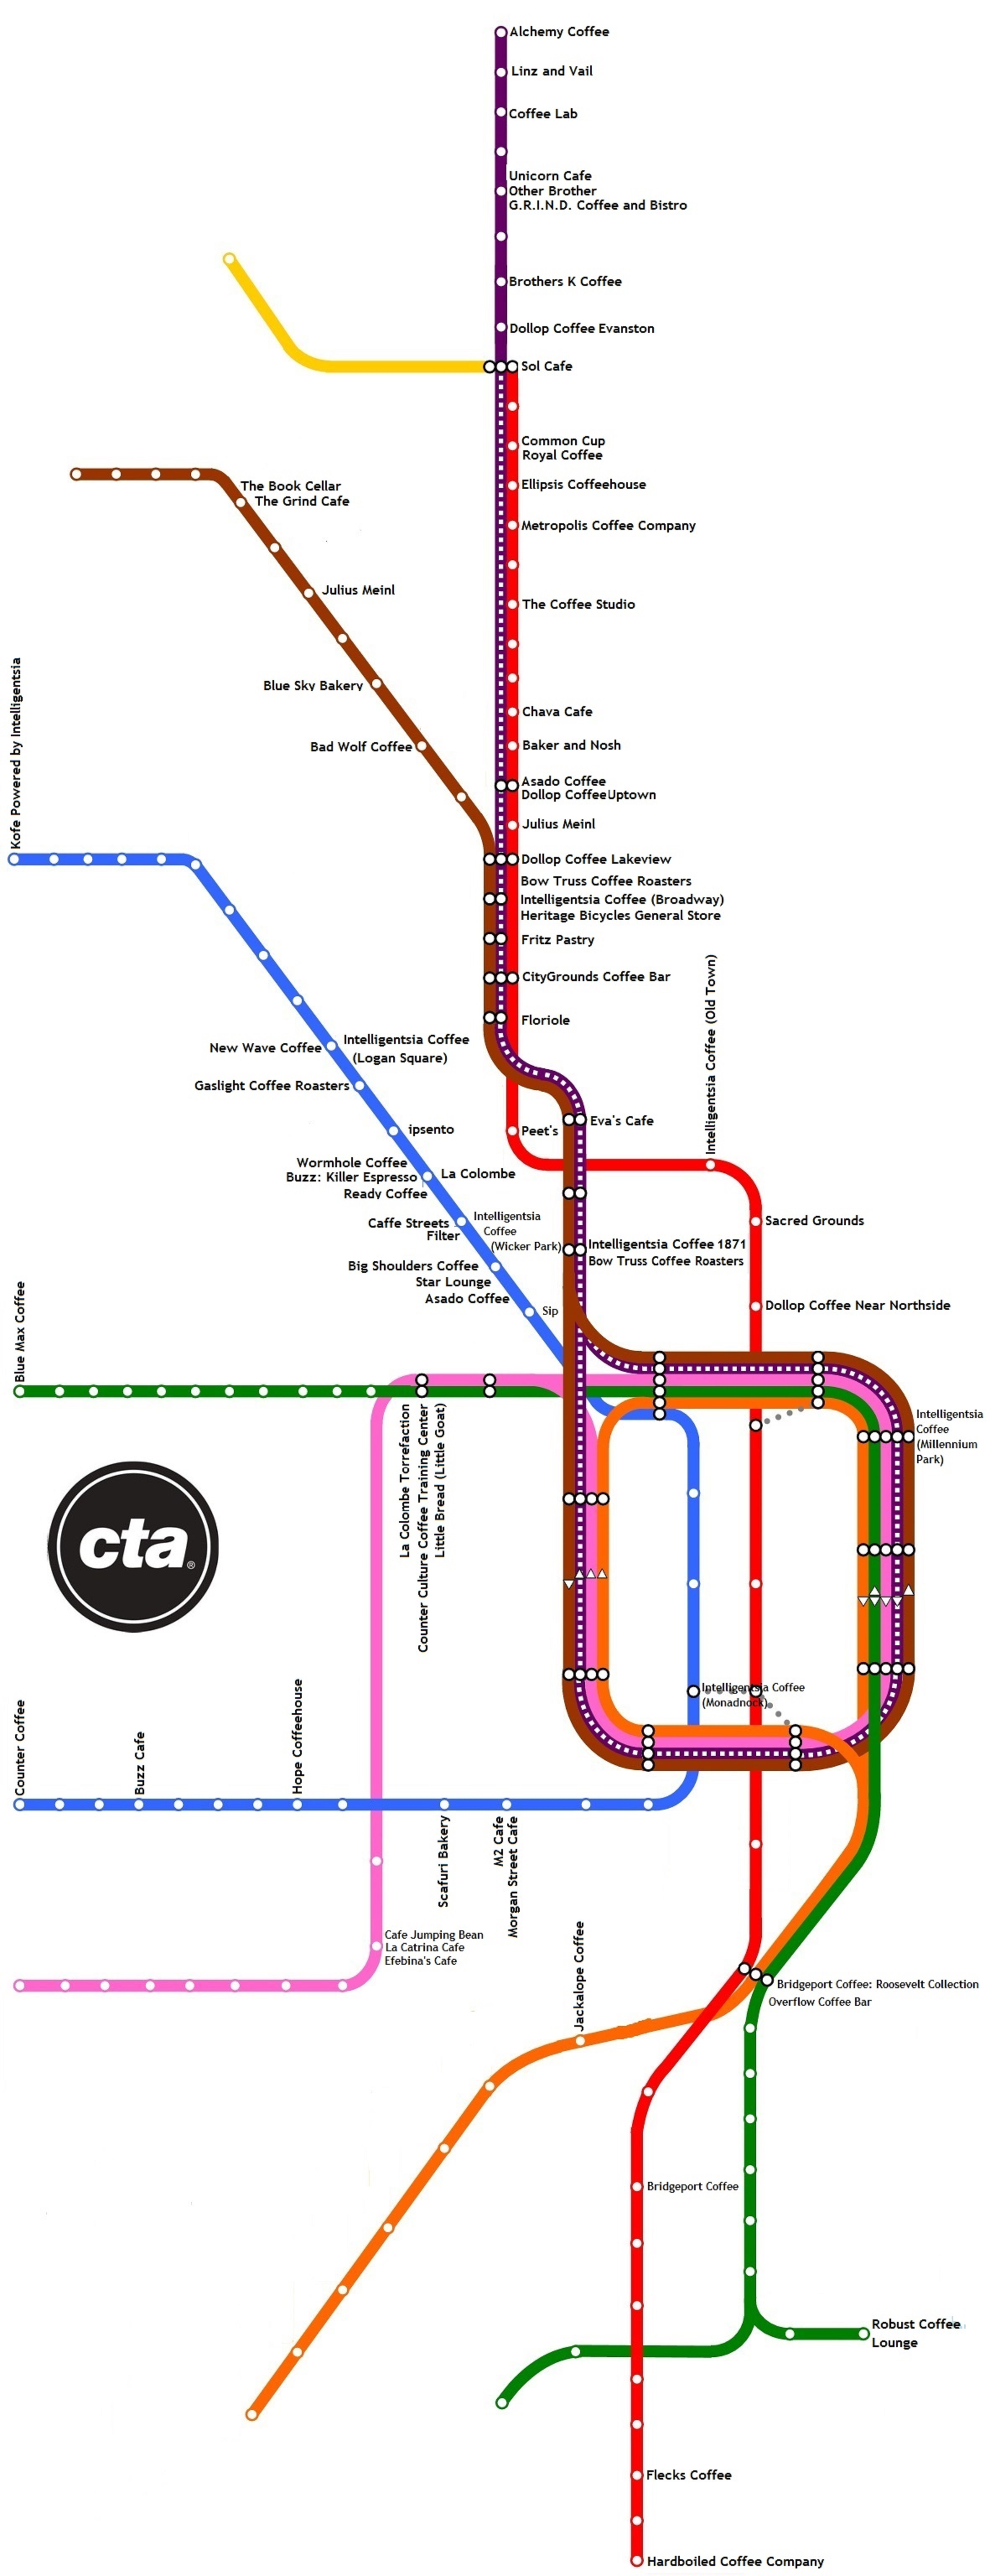 Chicago el coffee map